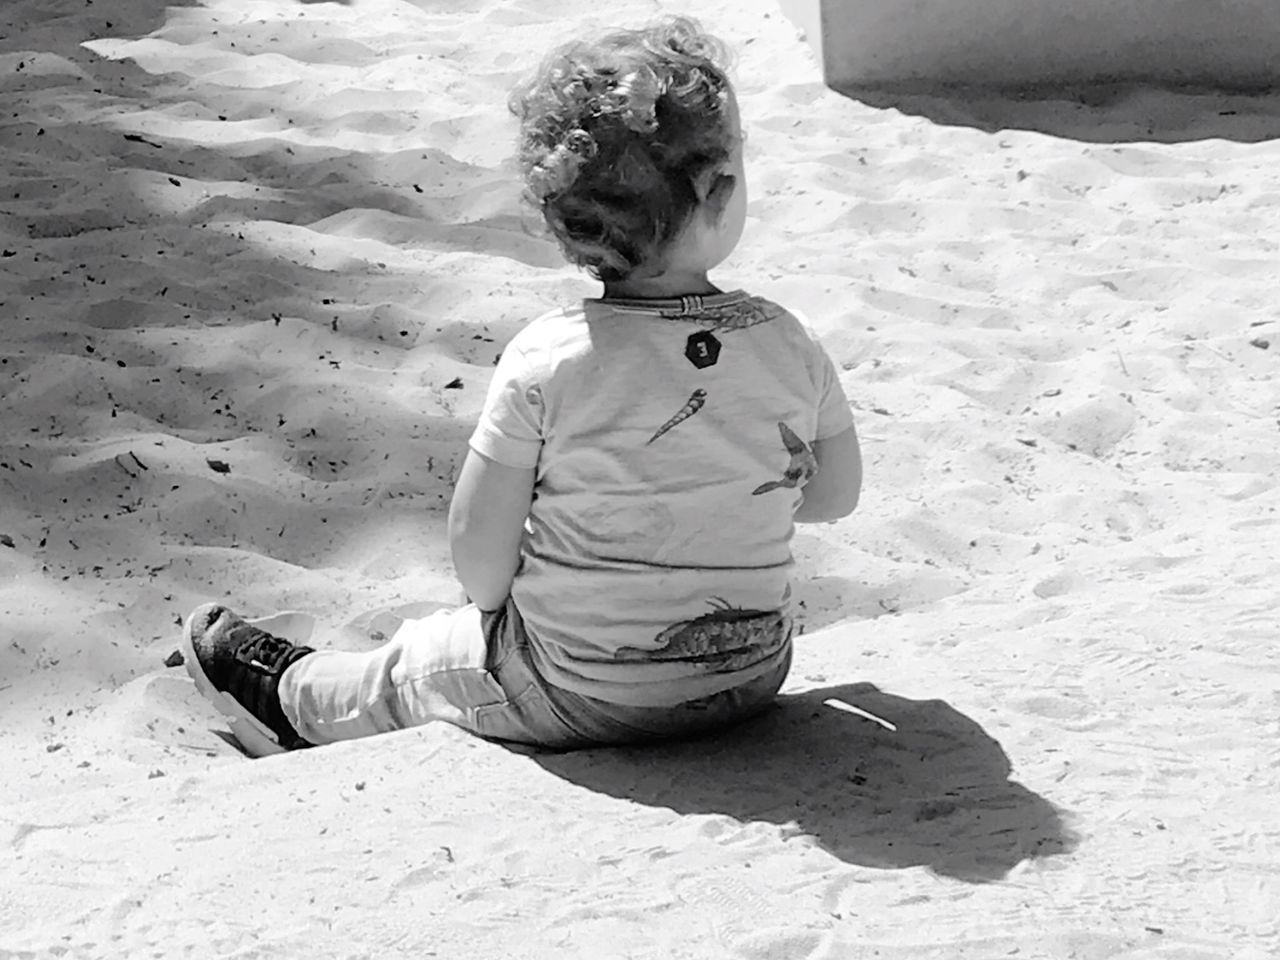 child, childhood, real people, one person, sunlight, sand, sitting, land, leisure activity, day, boys, nature, lifestyles, full length, men, high angle view, shadow, males, innocence